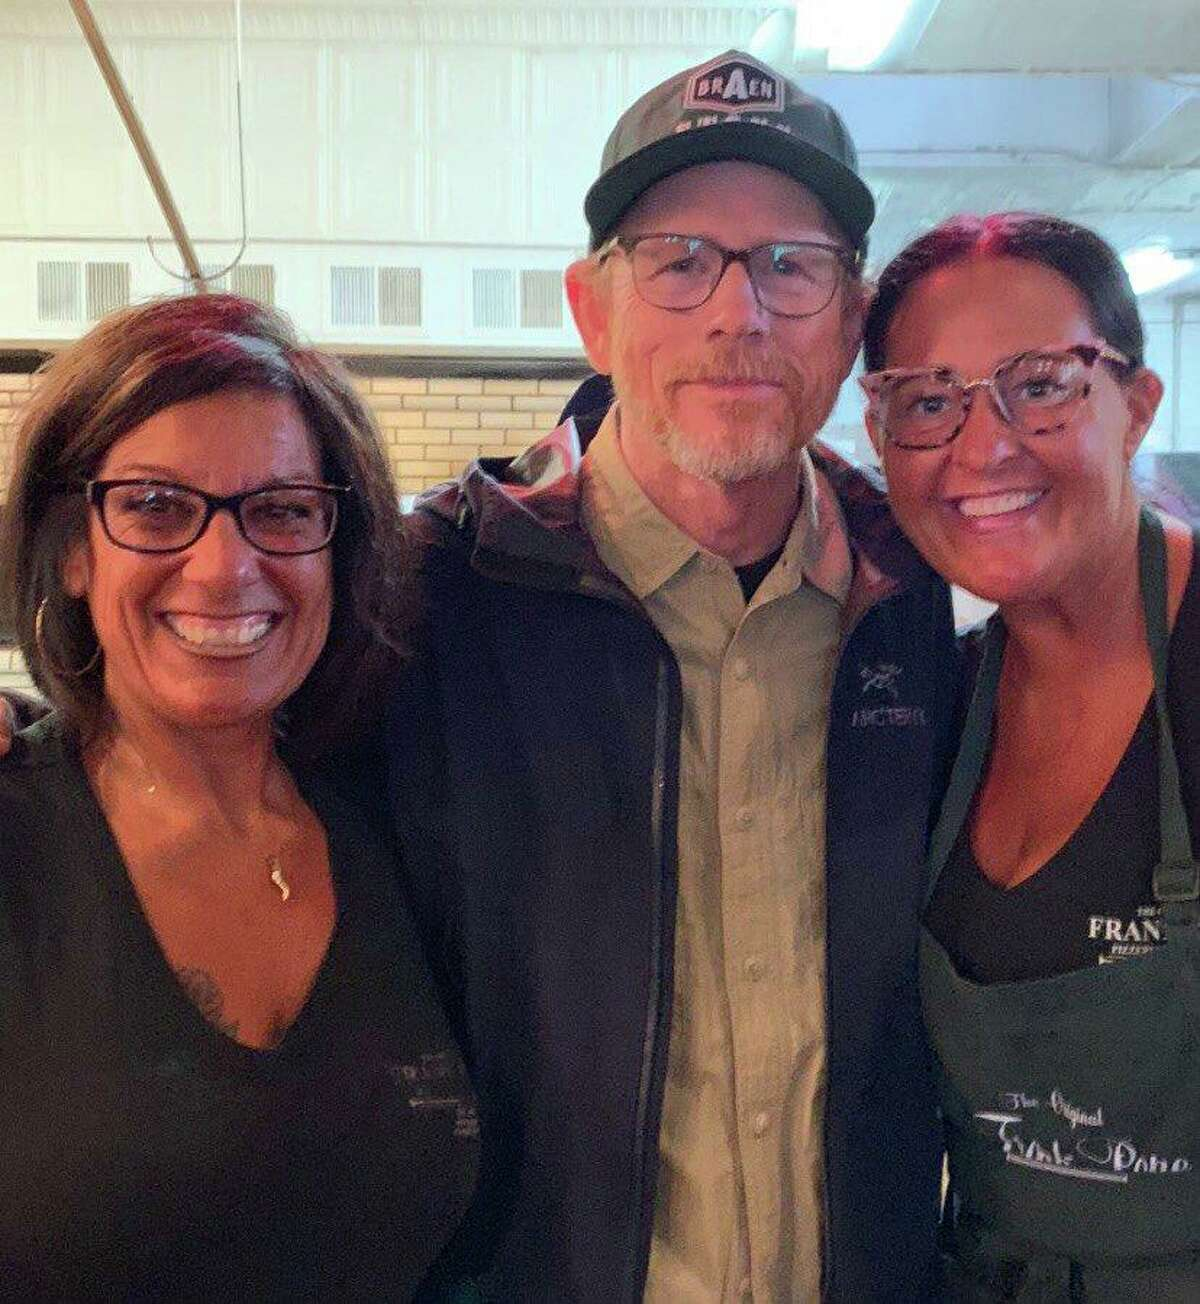 """Academy Award-winning filmmaker Ron Howard meets with the staff at Pepe's Pizza after dropping in for lunch at the location in New Haven. Howard is in town to film """"Hillbilly Elegy."""""""